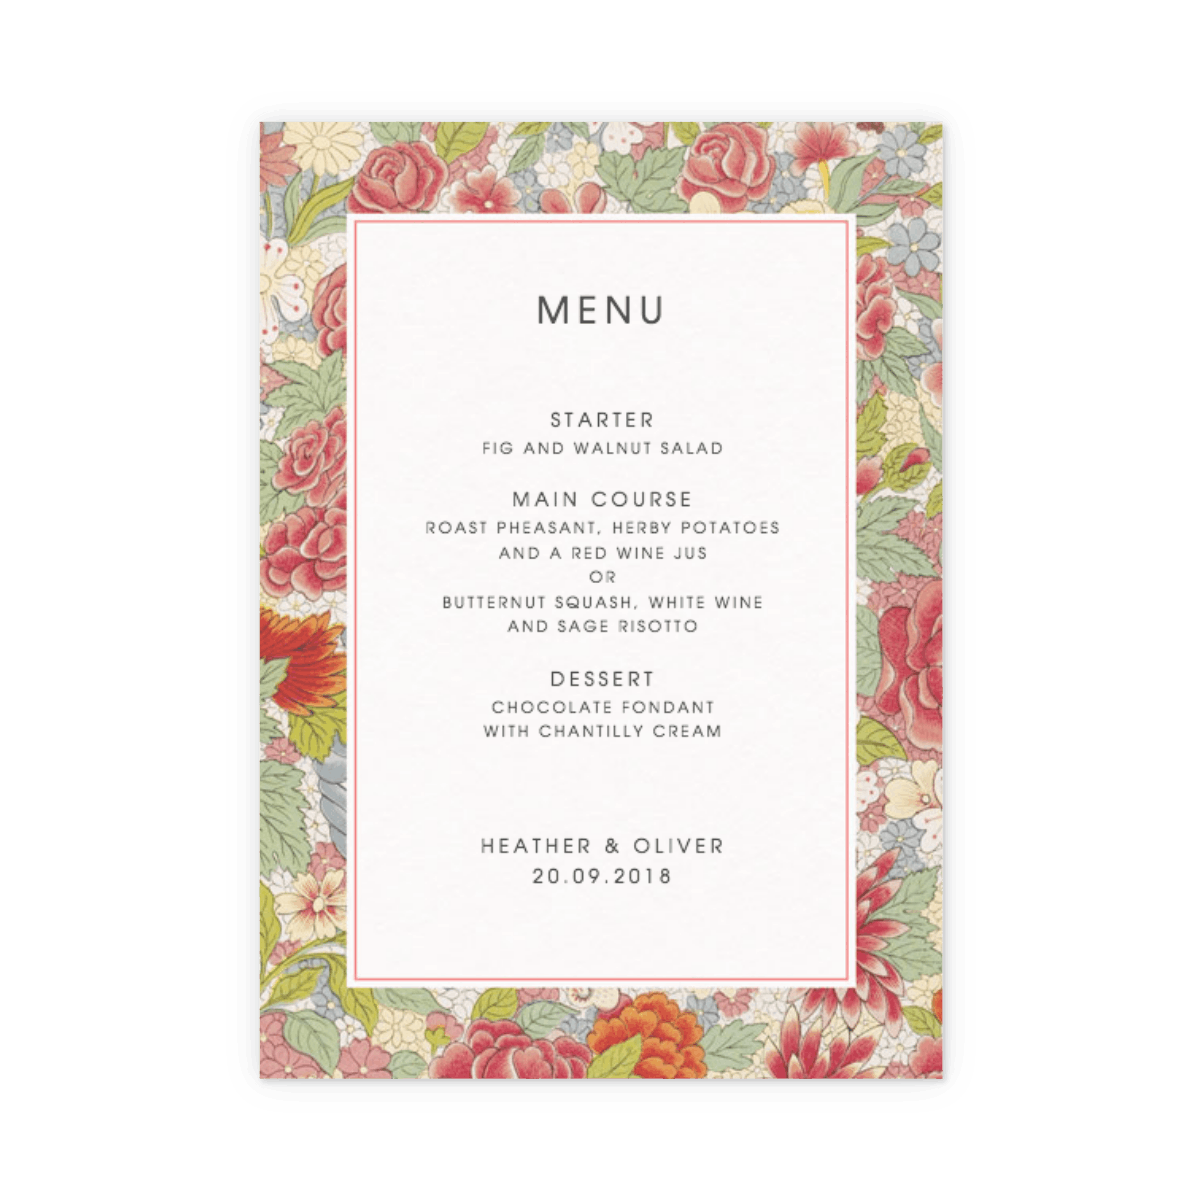 Https%3a%2f%2fwww.papier.com%2fproduct image%2f20196%2f4%2fred roses 5169 front 1553549901.png?ixlib=rb 1.1